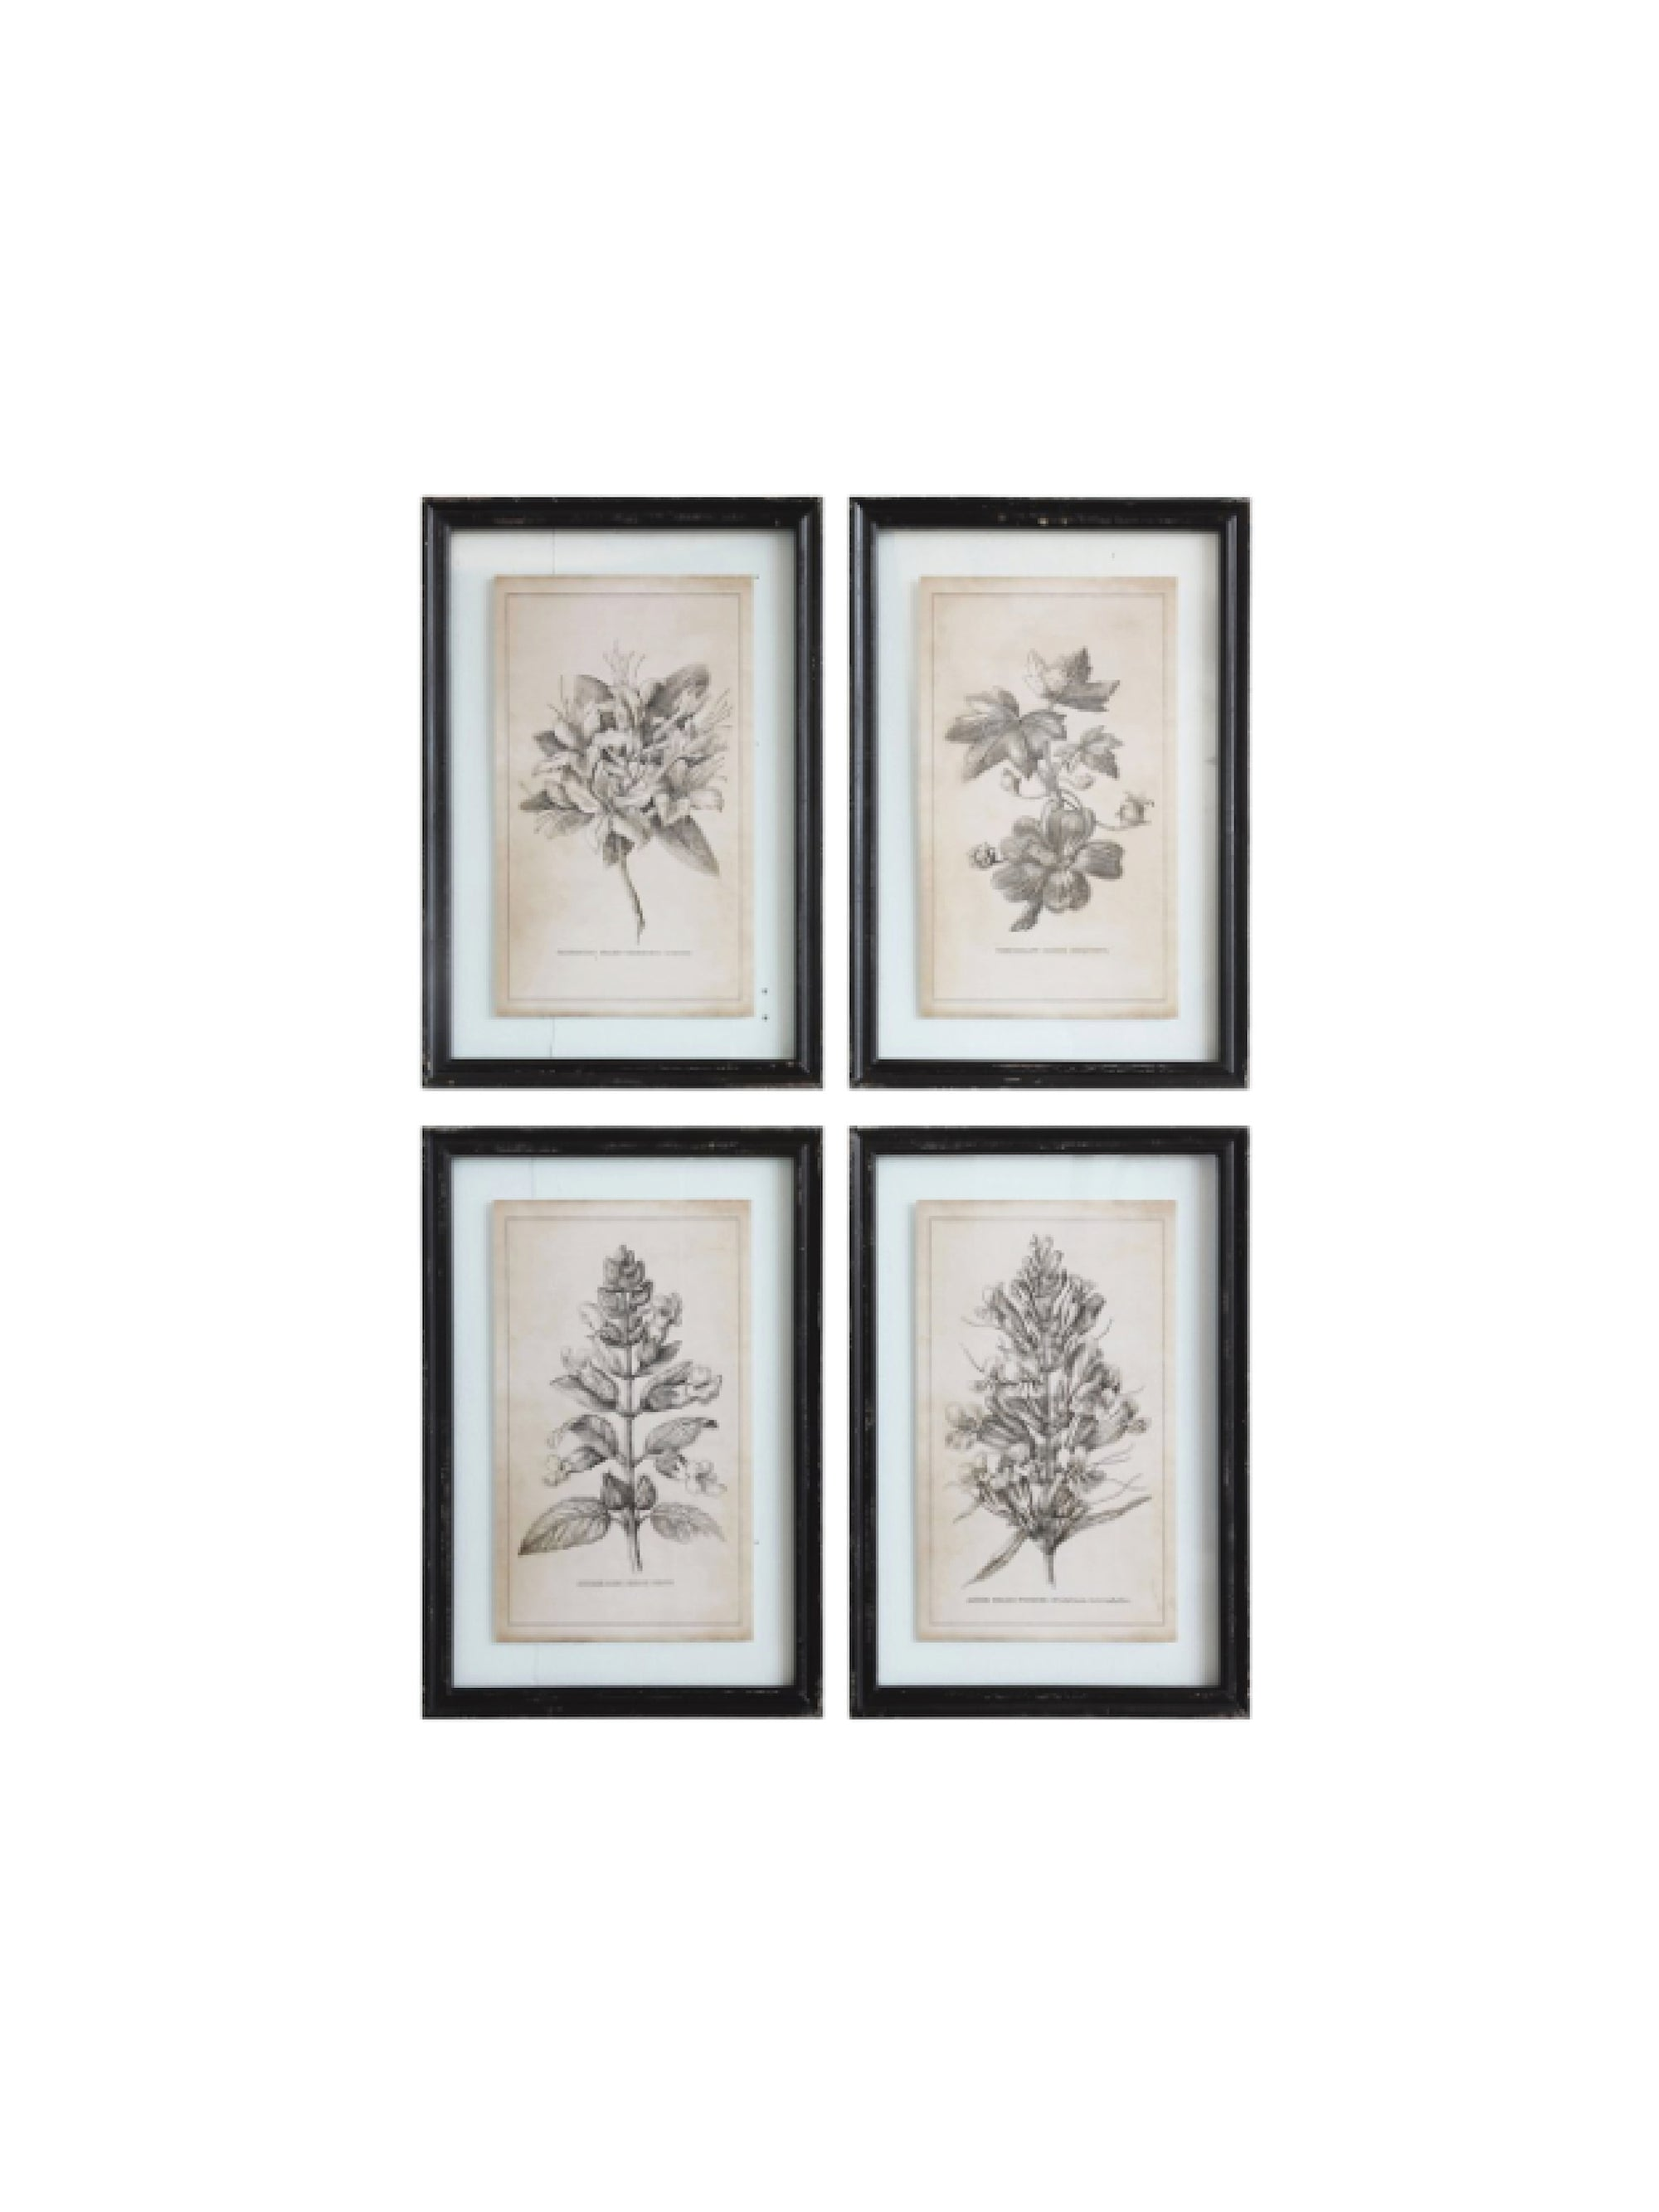 Floral Image in Wood Frame